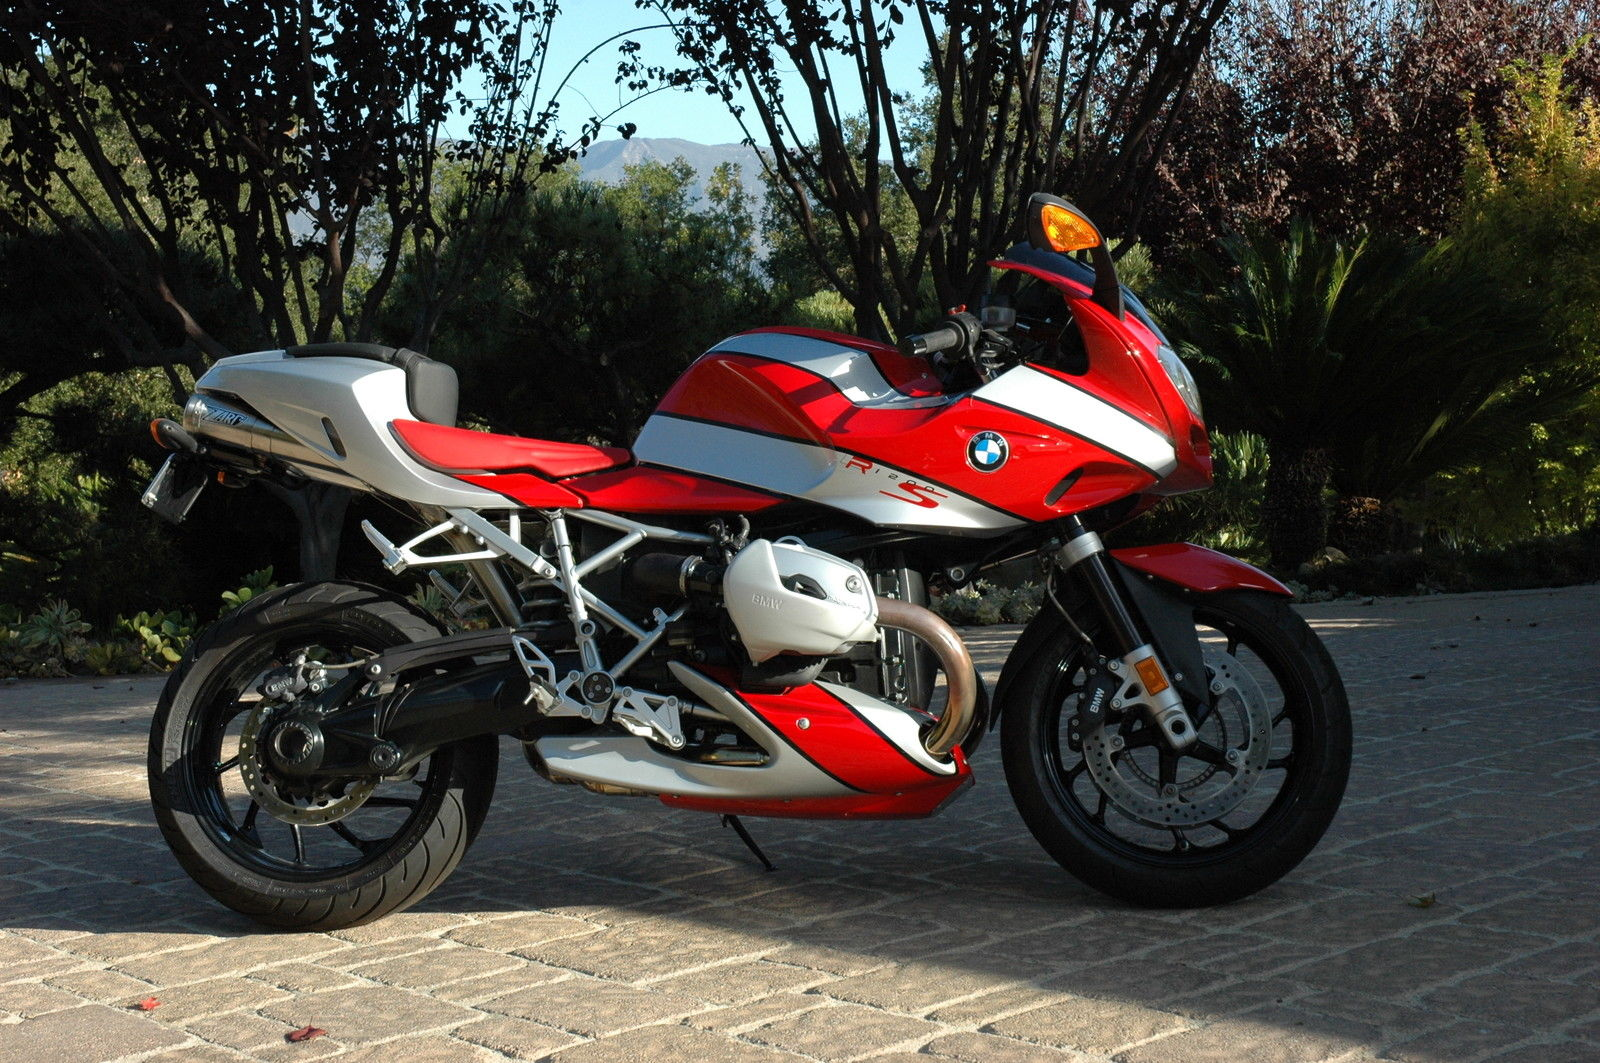 Candy Cane - 2007 BMW R1200S For Sale